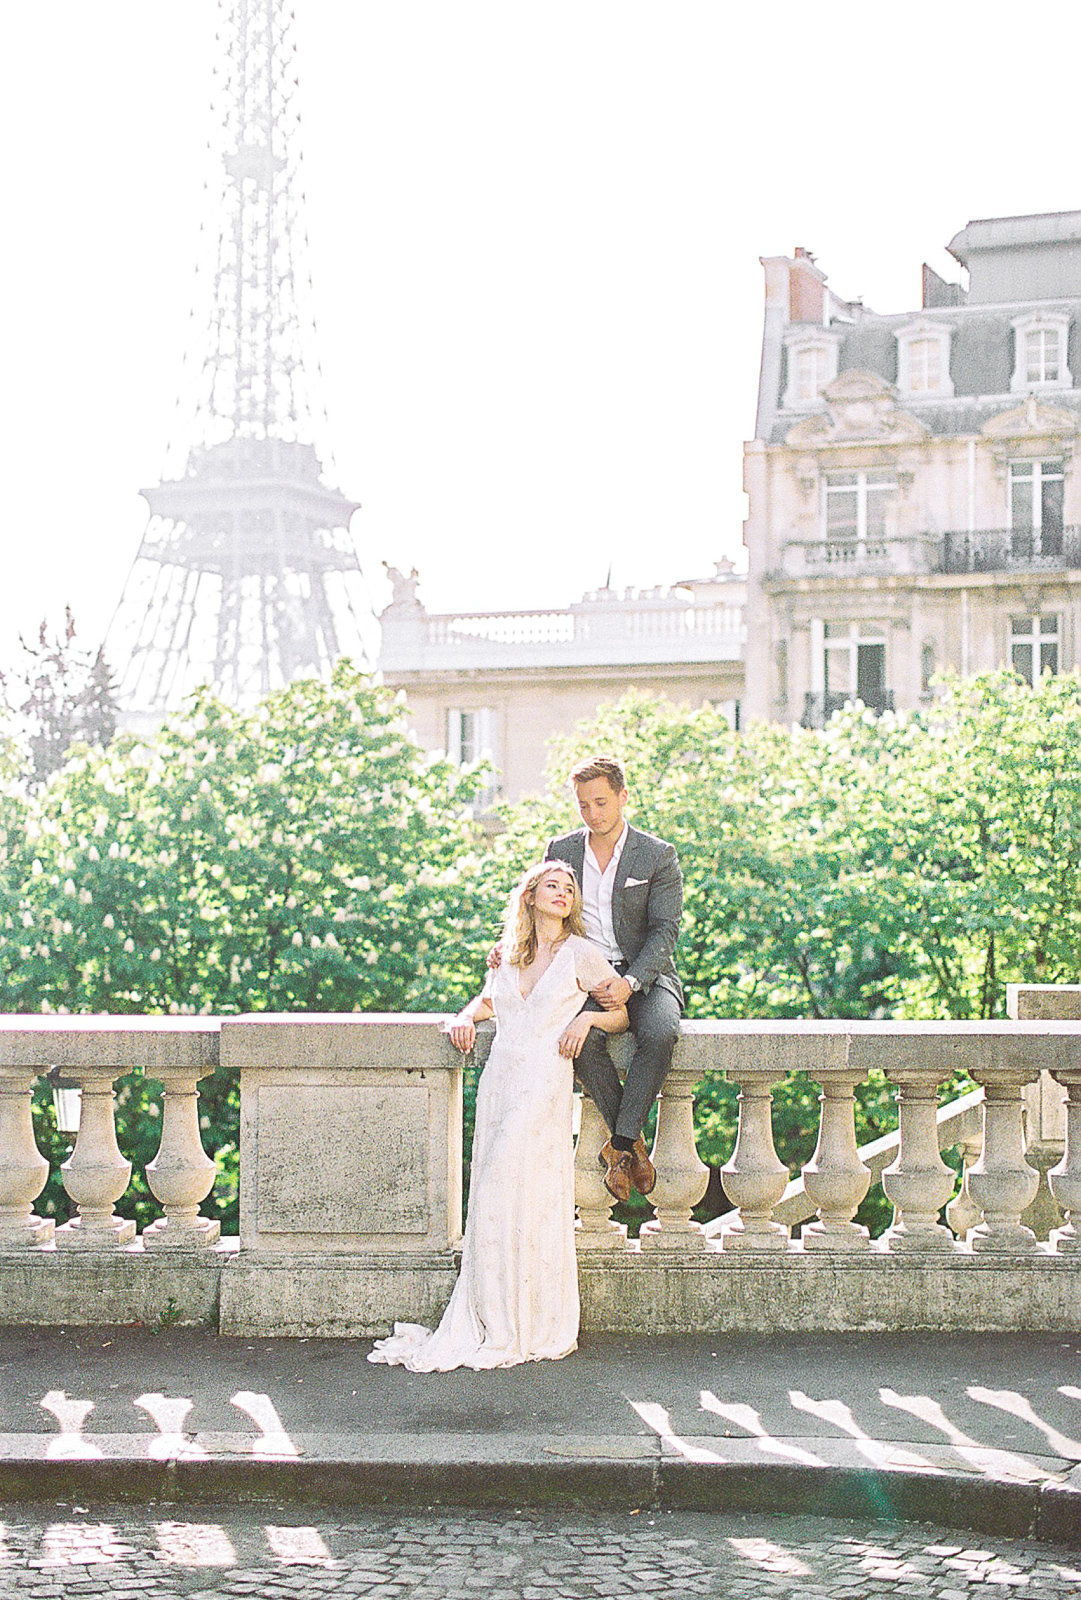 yana-schicht_hamburg_paris-fine-art-film-wedding-photographer_shangri-la_france_021